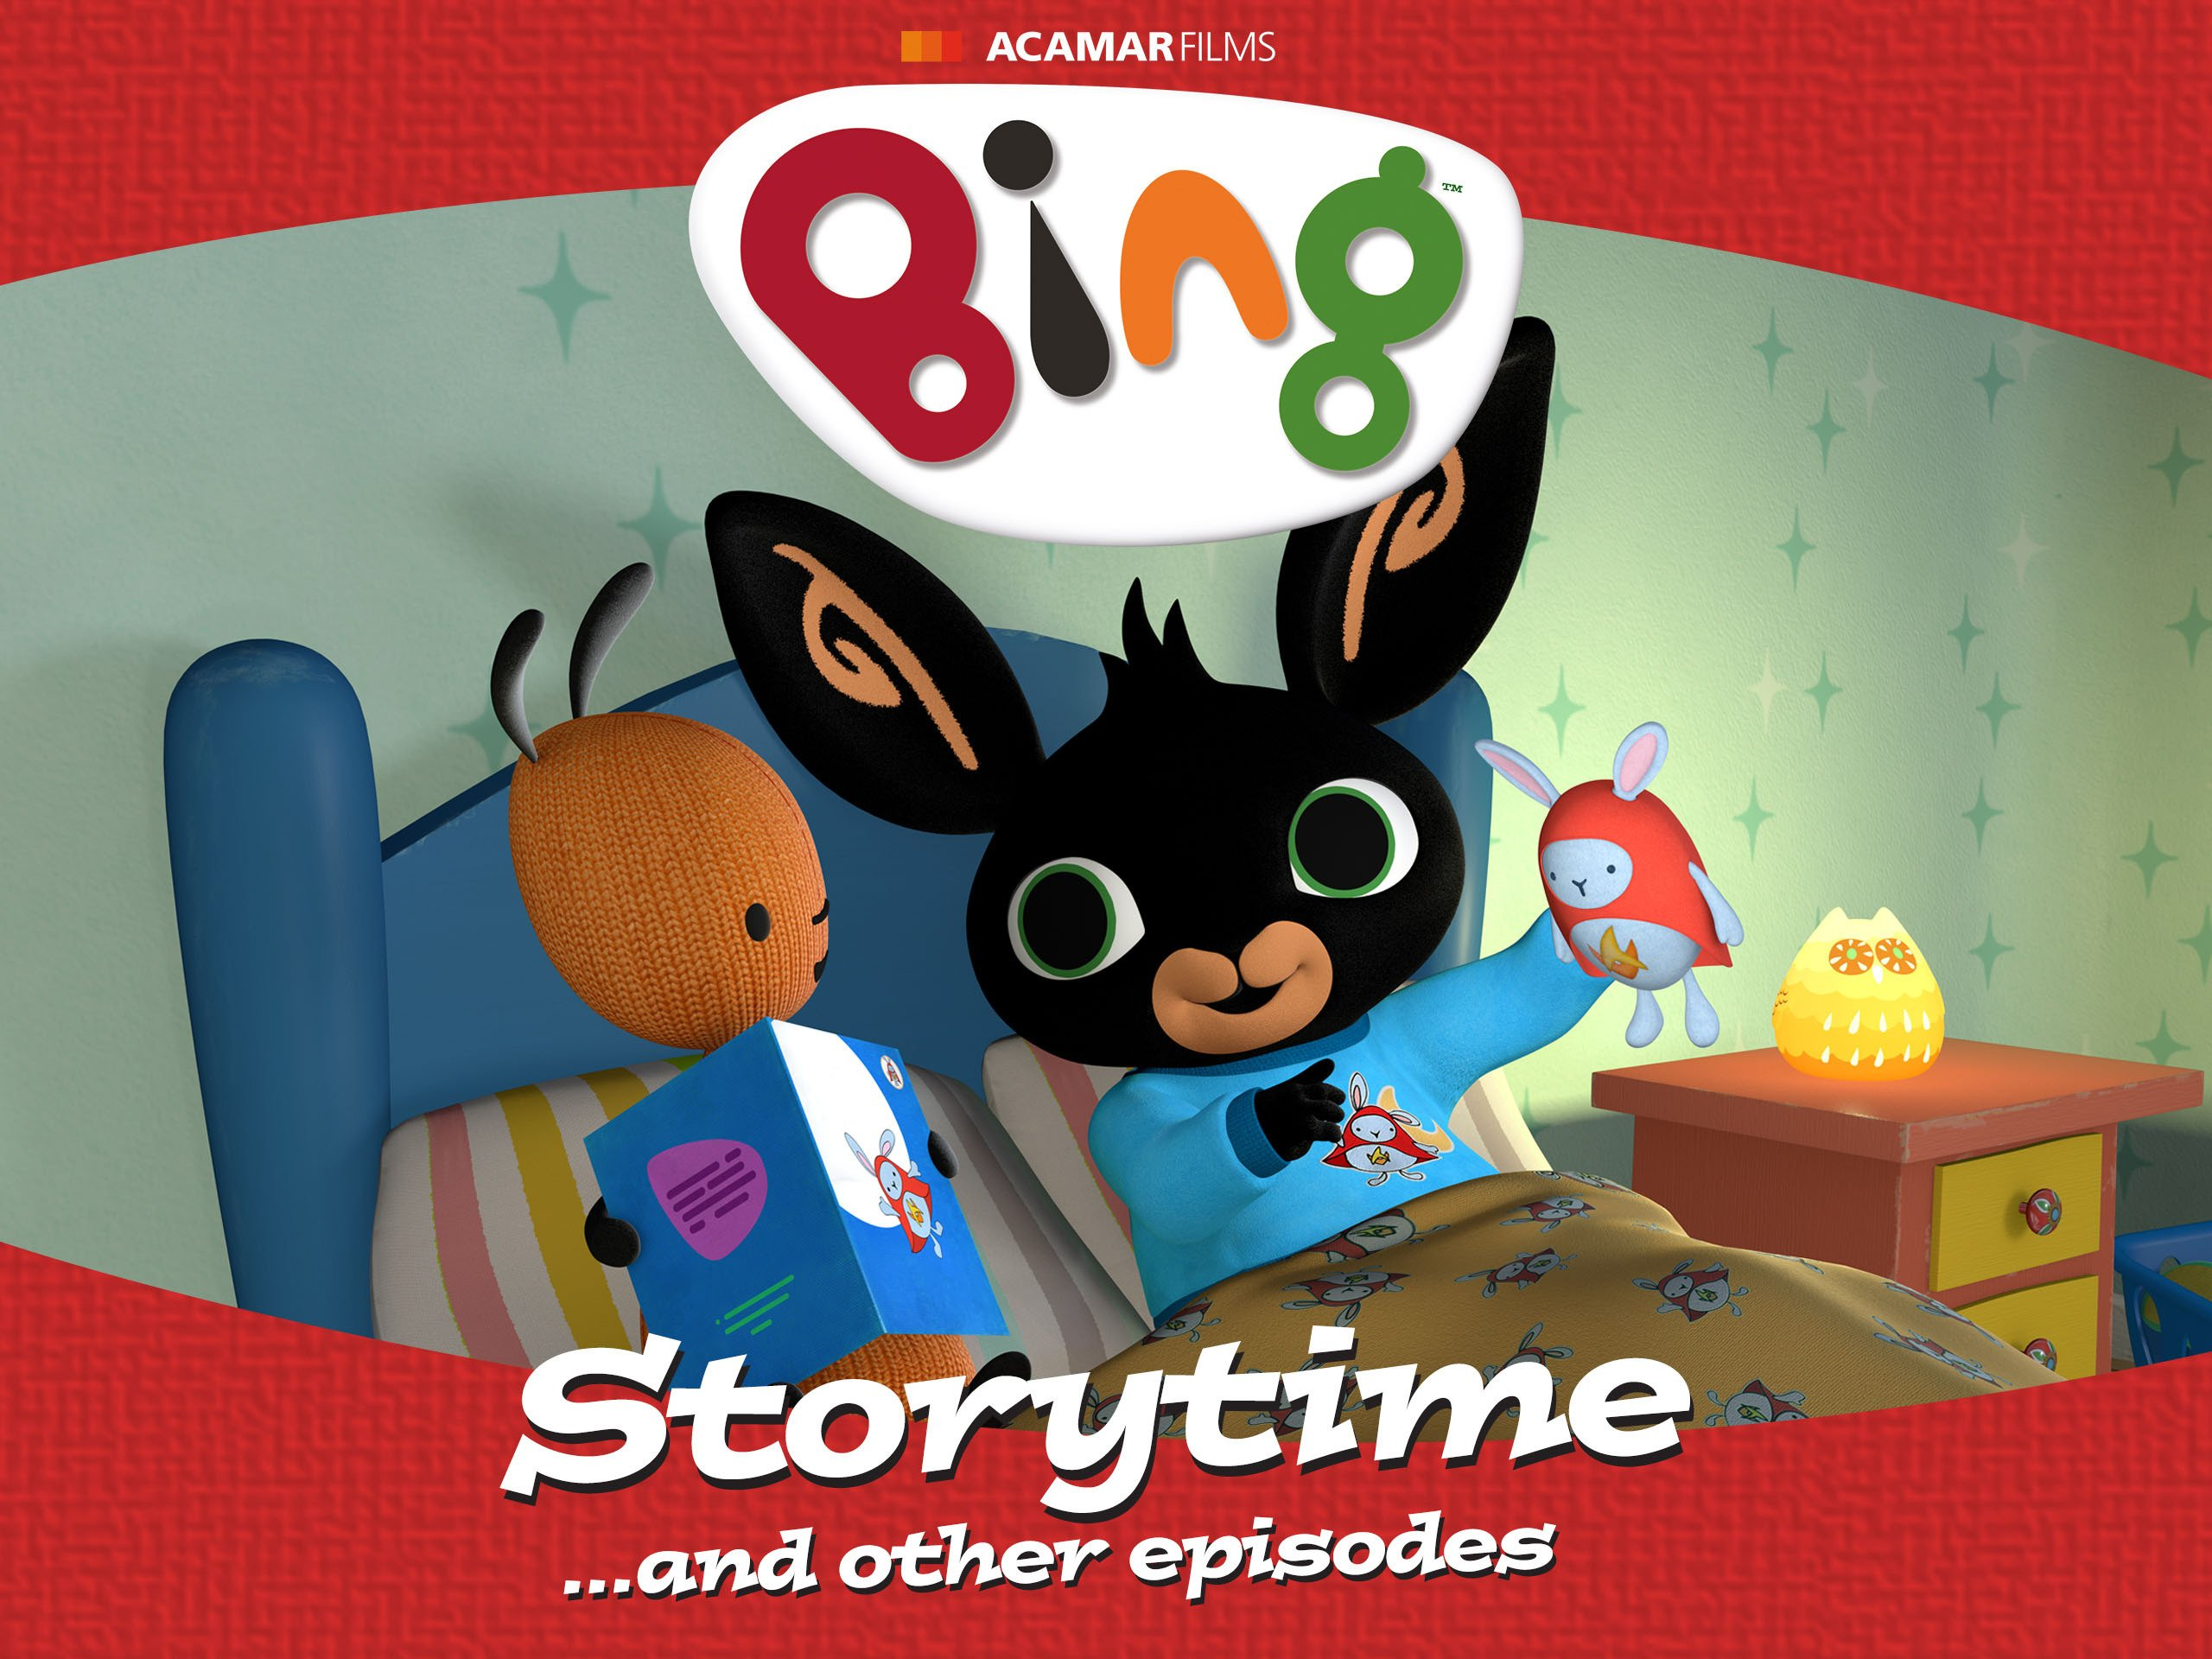 Bing Storytime & Other Episodes